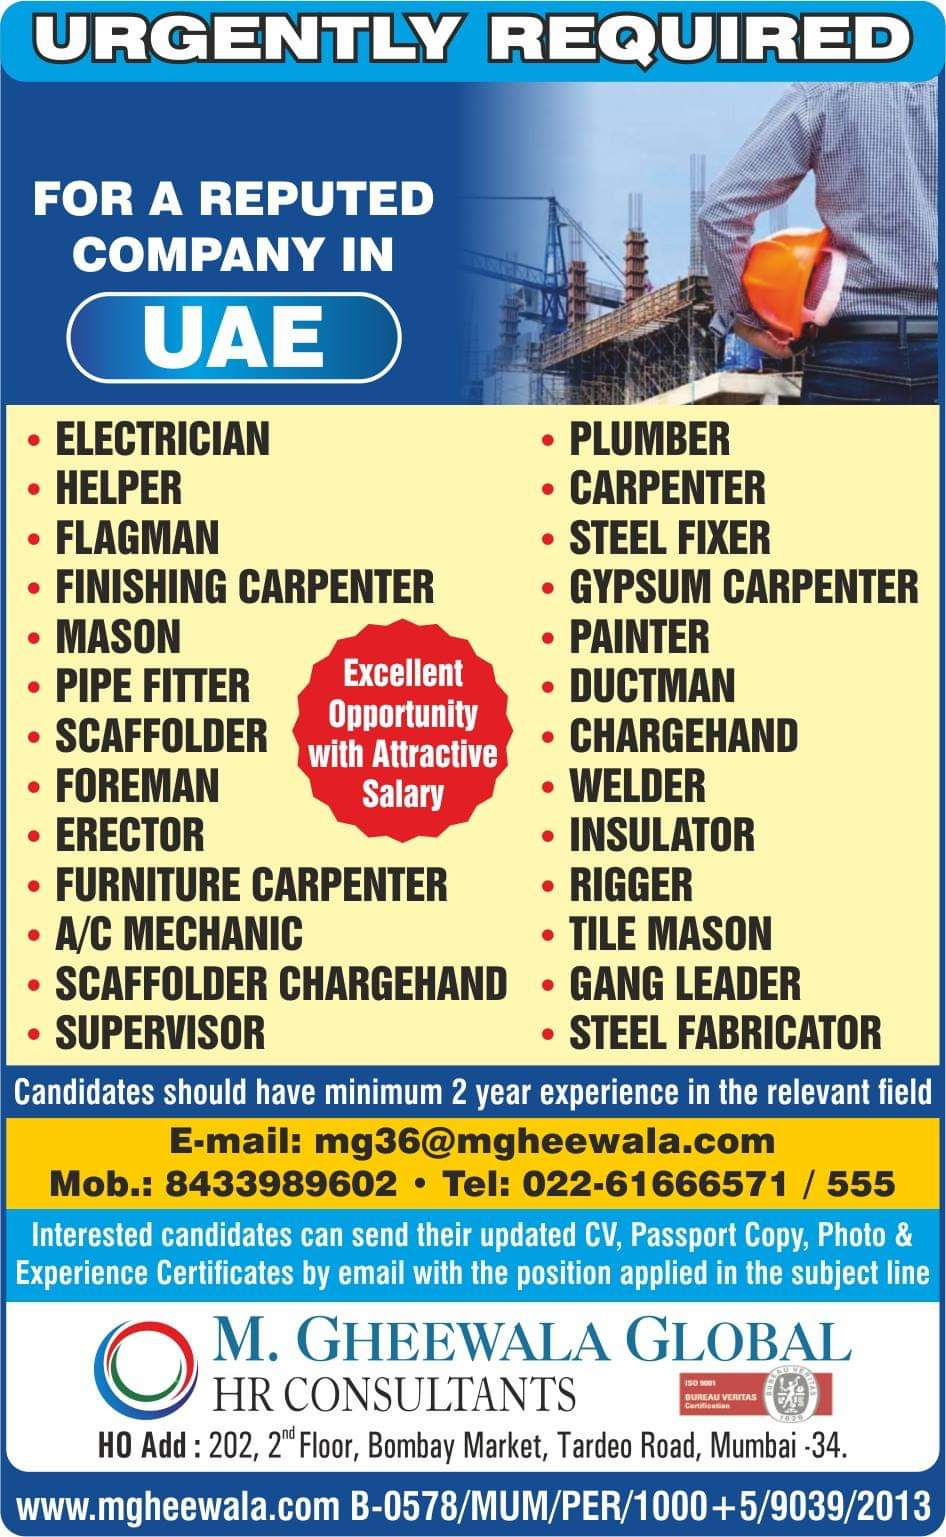 URGENTLY REQUIRED FOR A REPUTED COMPANY IN UAE